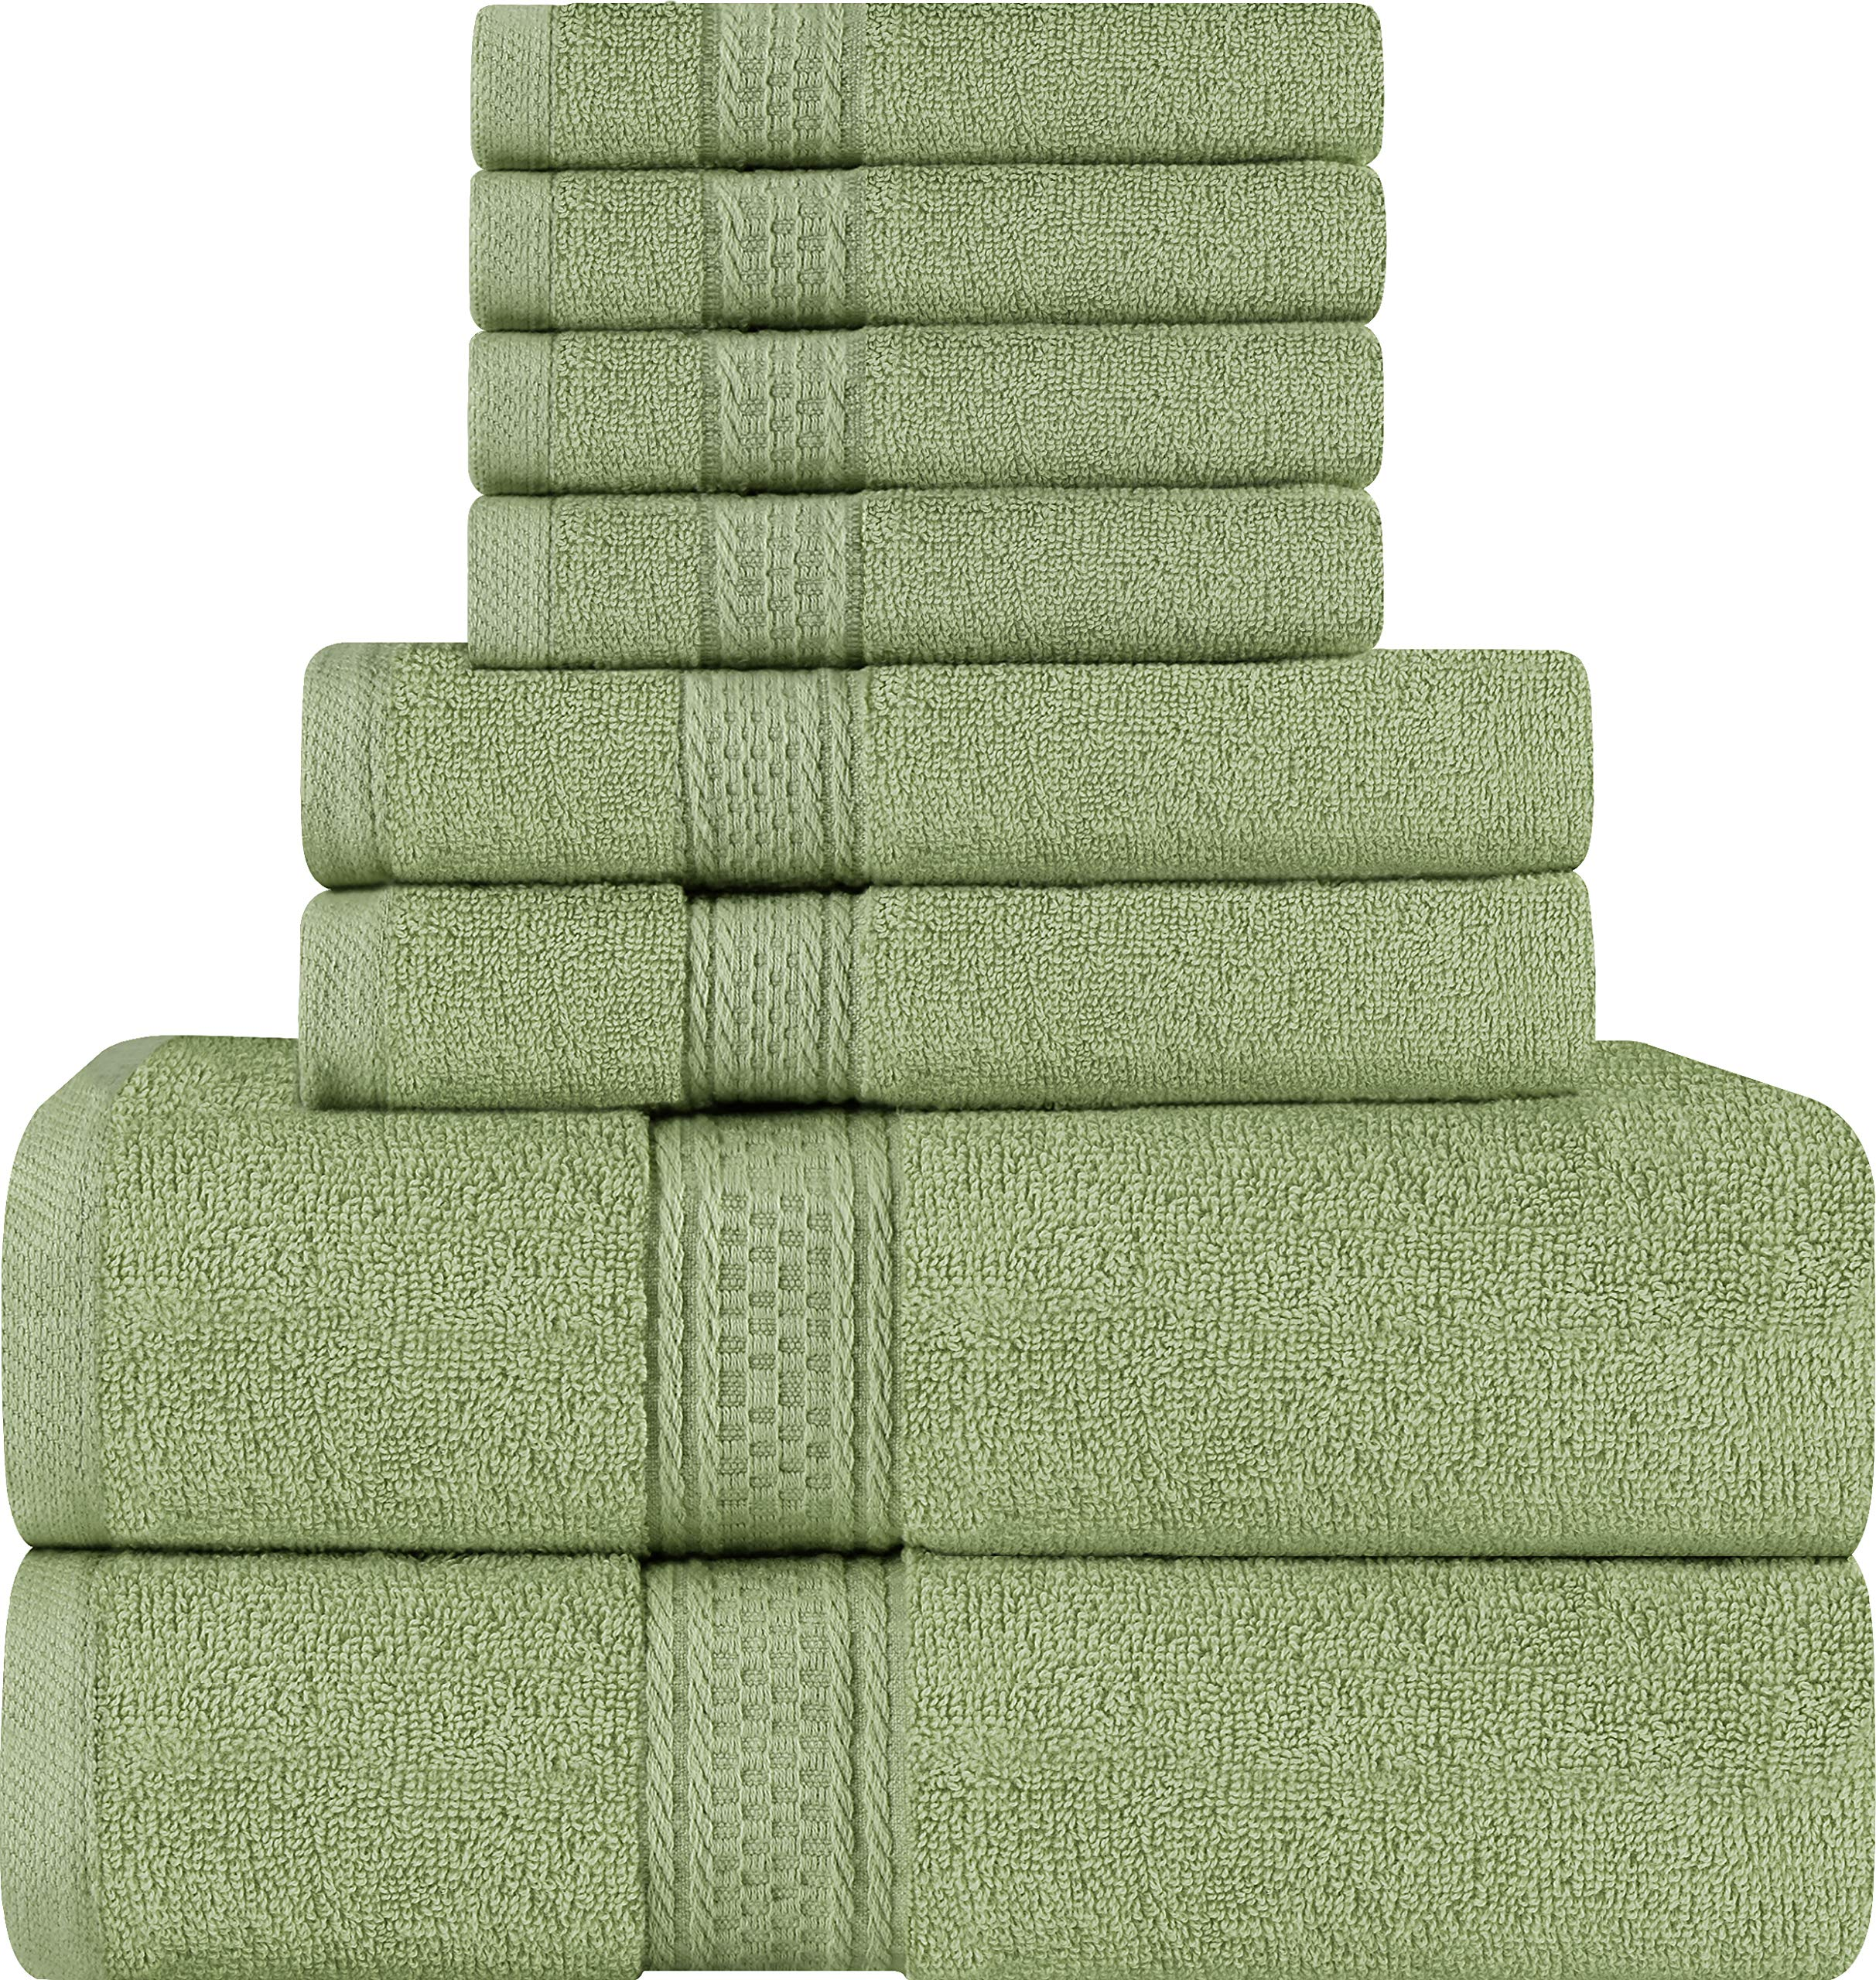 Utopia Towels 8 Piece Towel Set, Sage Green, 2 Bath Towels, 2 Hand Towels, and 4 Washcloths